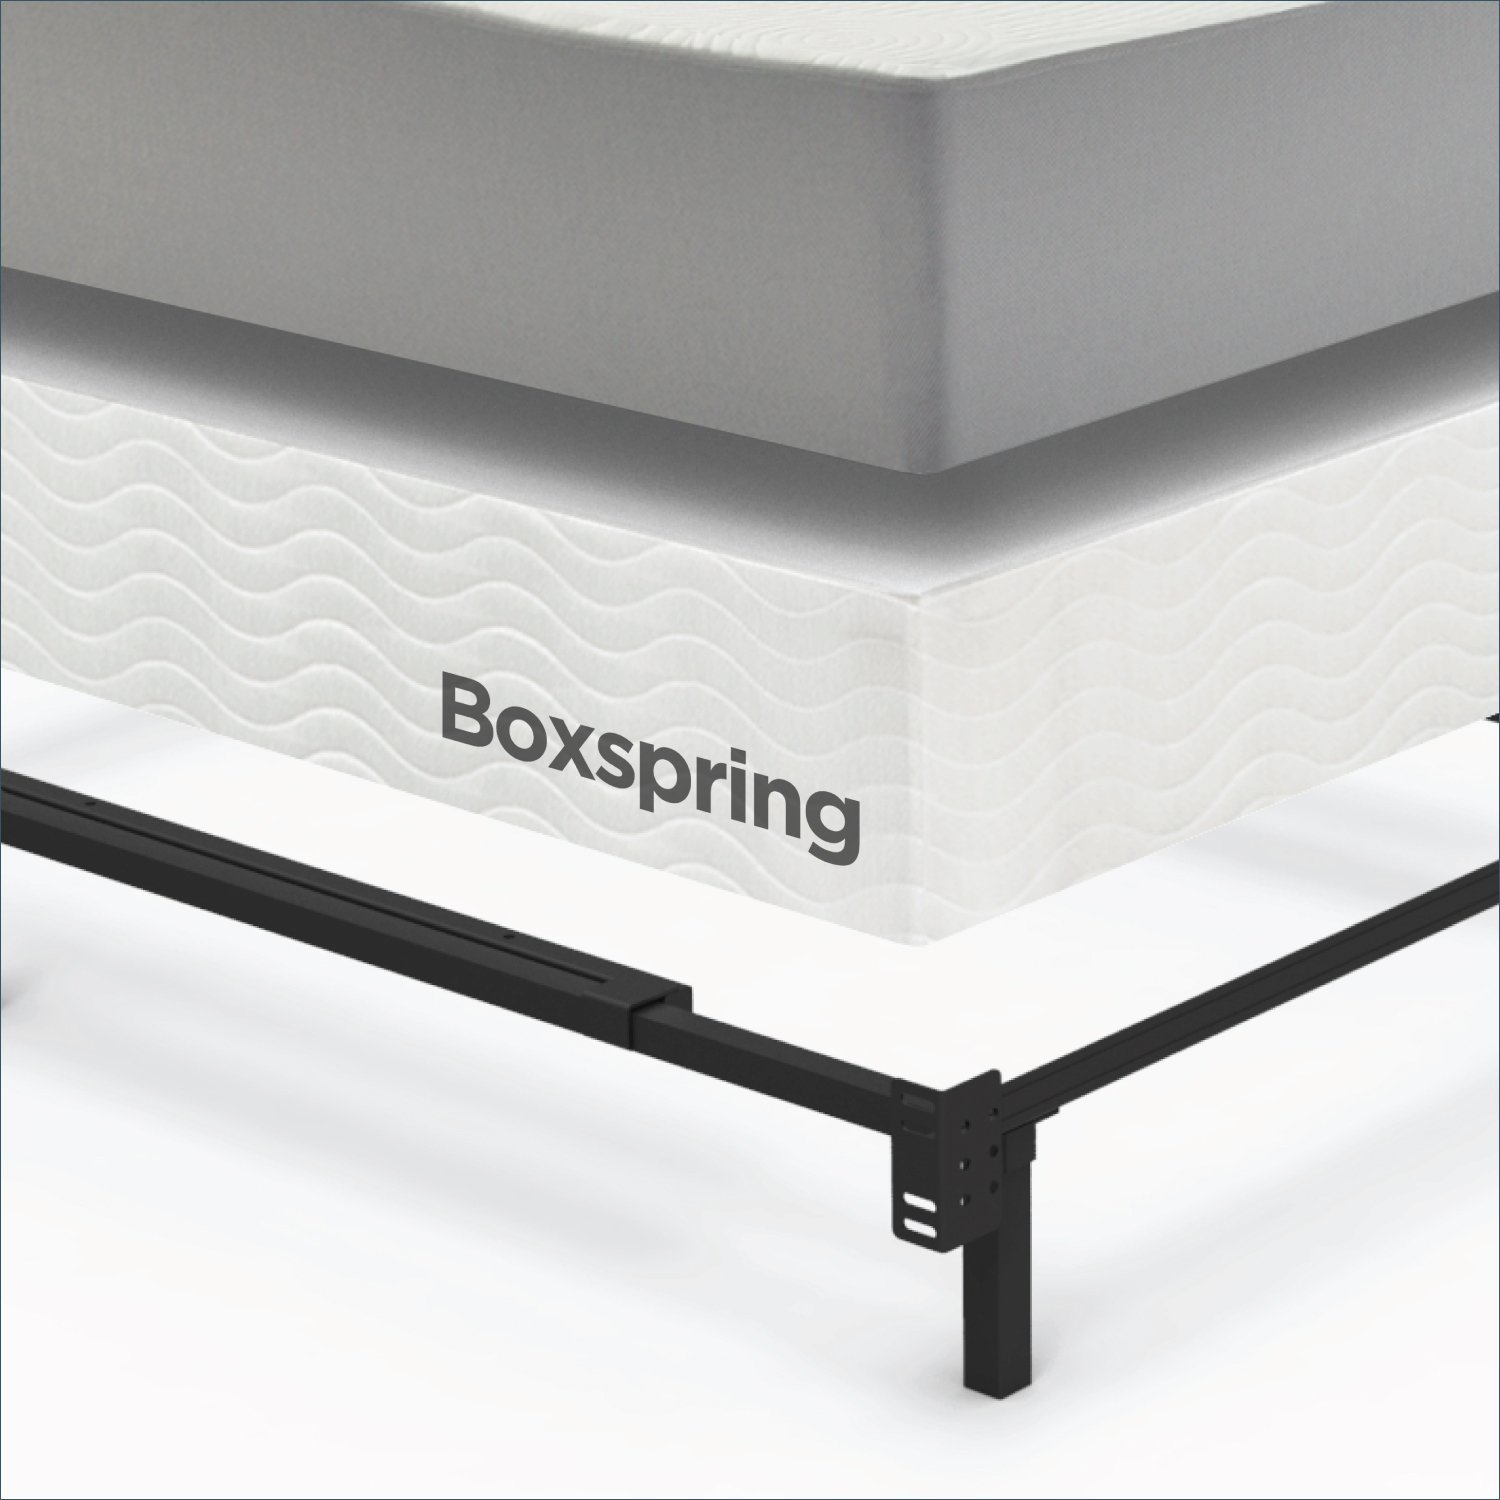 Adjustable California King Metal Bed Frame Zinus Compack 9 Leg Support For Box Spring Mattress Set Stability And With Legs Center